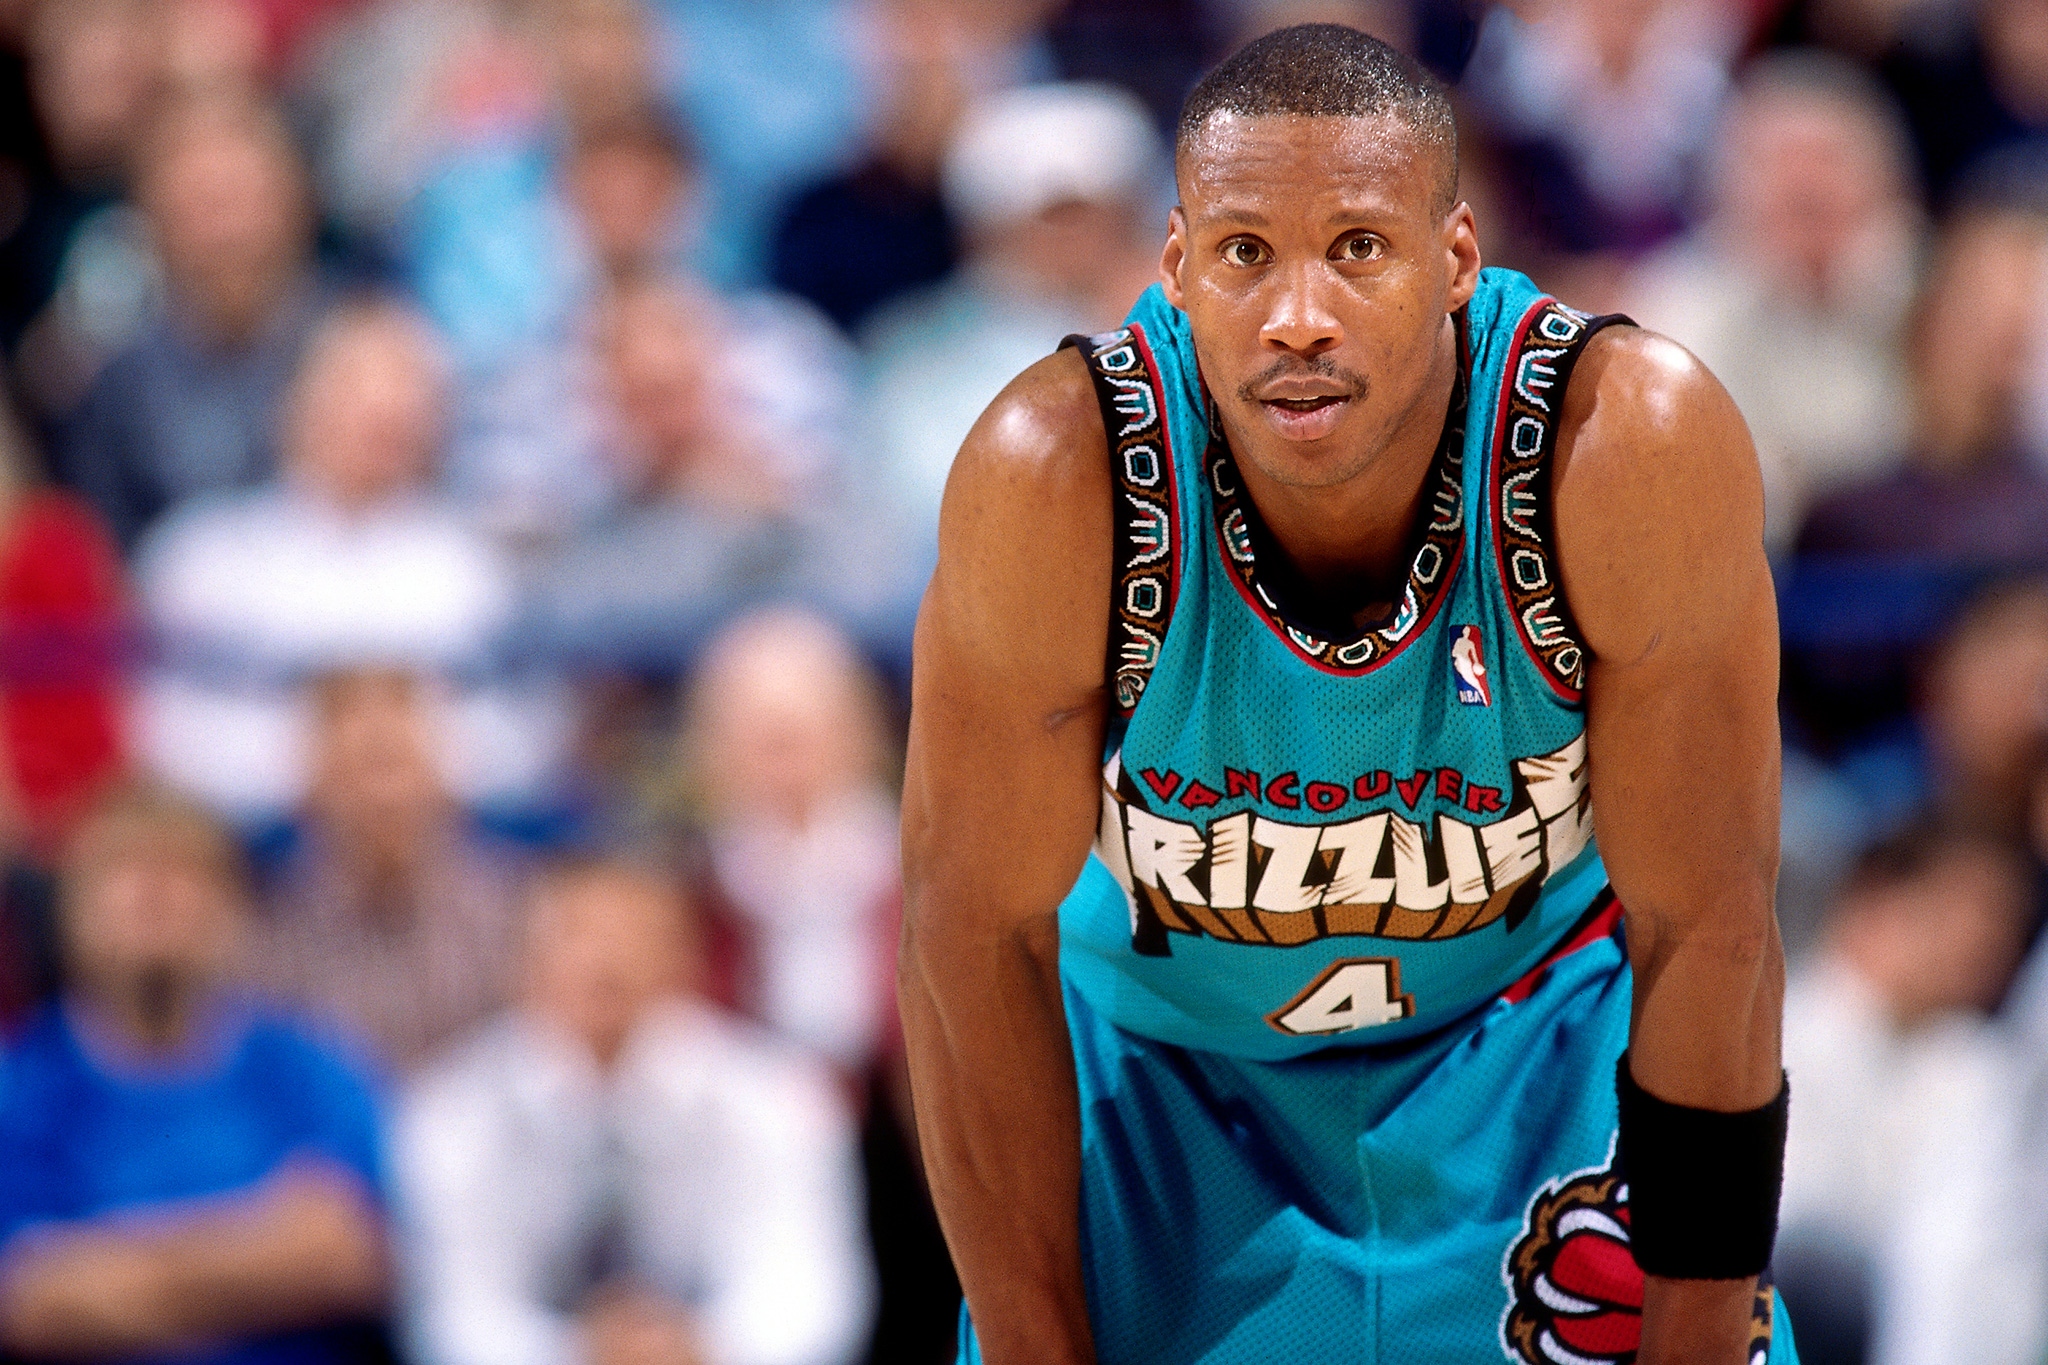 Vancouver Grizzlies Byron Scott Through the Years ESPN